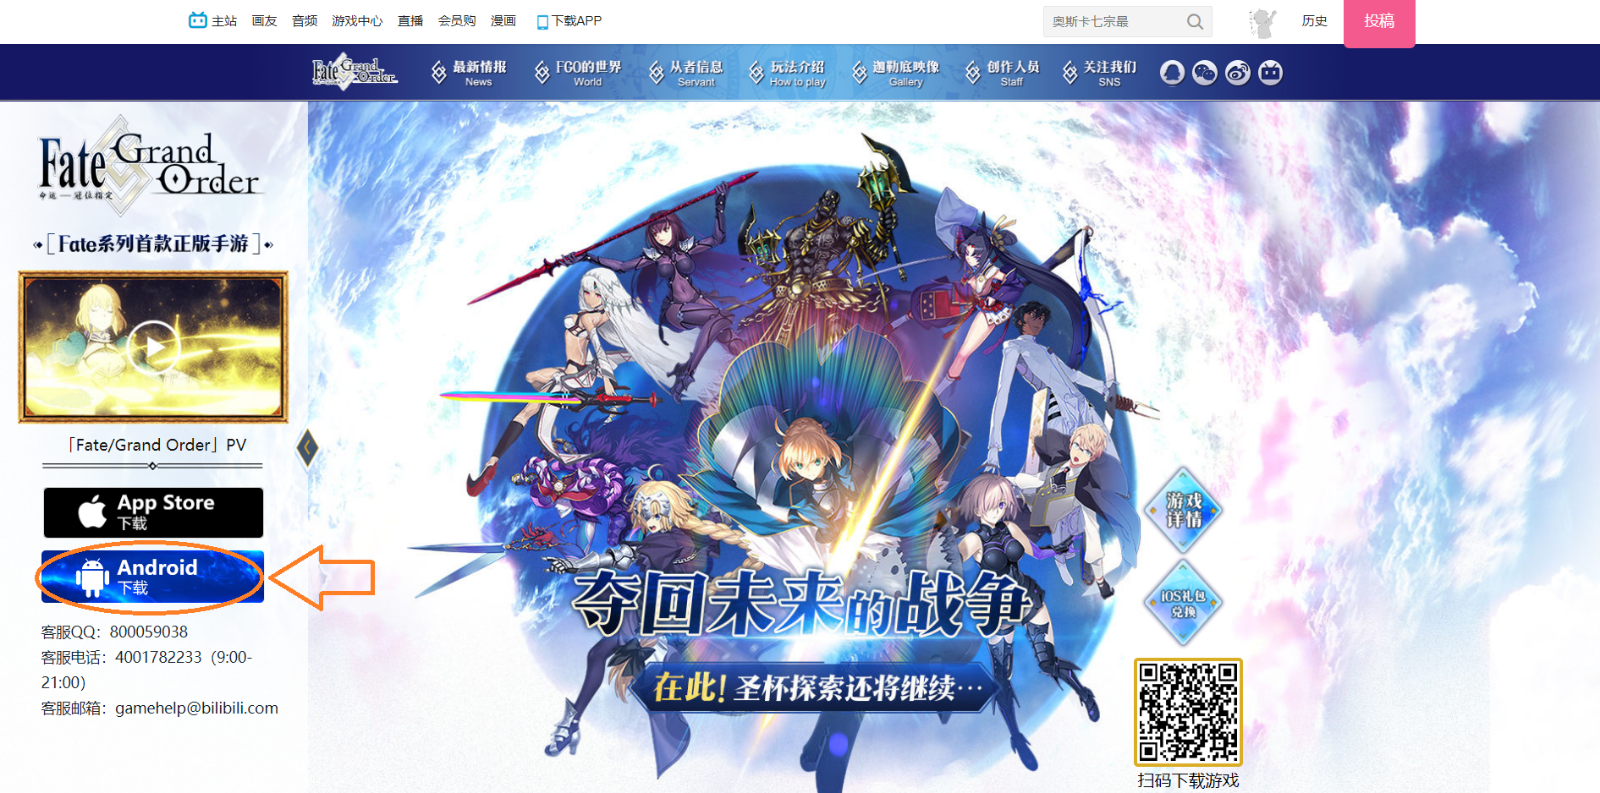 [CN ANDROID] INSTANT BUY 2 GET 3 | 2400-2950 SQ | FGO Fate Grand Order Account 2